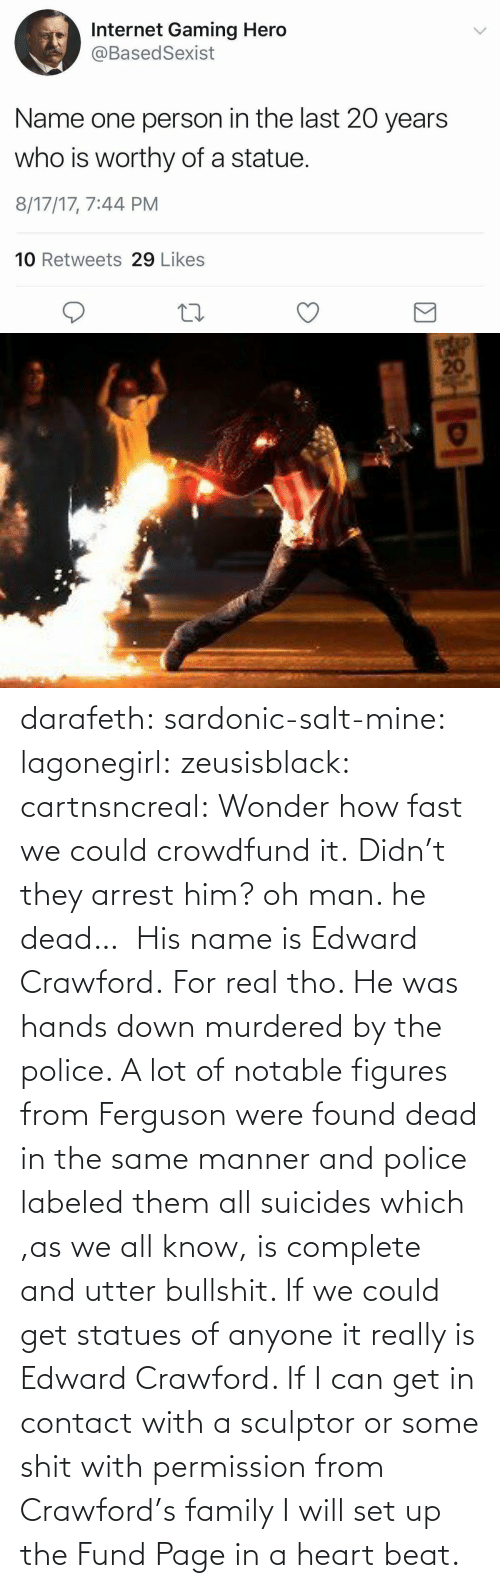 figures: darafeth: sardonic-salt-mine:  lagonegirl:  zeusisblack:  cartnsncreal:   Wonder how fast we could crowdfund it.    Didn't they arrest him?  oh man. he dead…   His name is Edward Crawford.   For real tho. He was hands down murdered by the police. A lot of notable figures from Ferguson were found dead in the same manner and police labeled them all suicides which ,as we all know, is complete and utter bullshit.  If we could get statues of anyone it really is Edward Crawford. If I can get in contact with a sculptor or some shit with permission from Crawford's family I will set up the Fund Page in a heart beat.